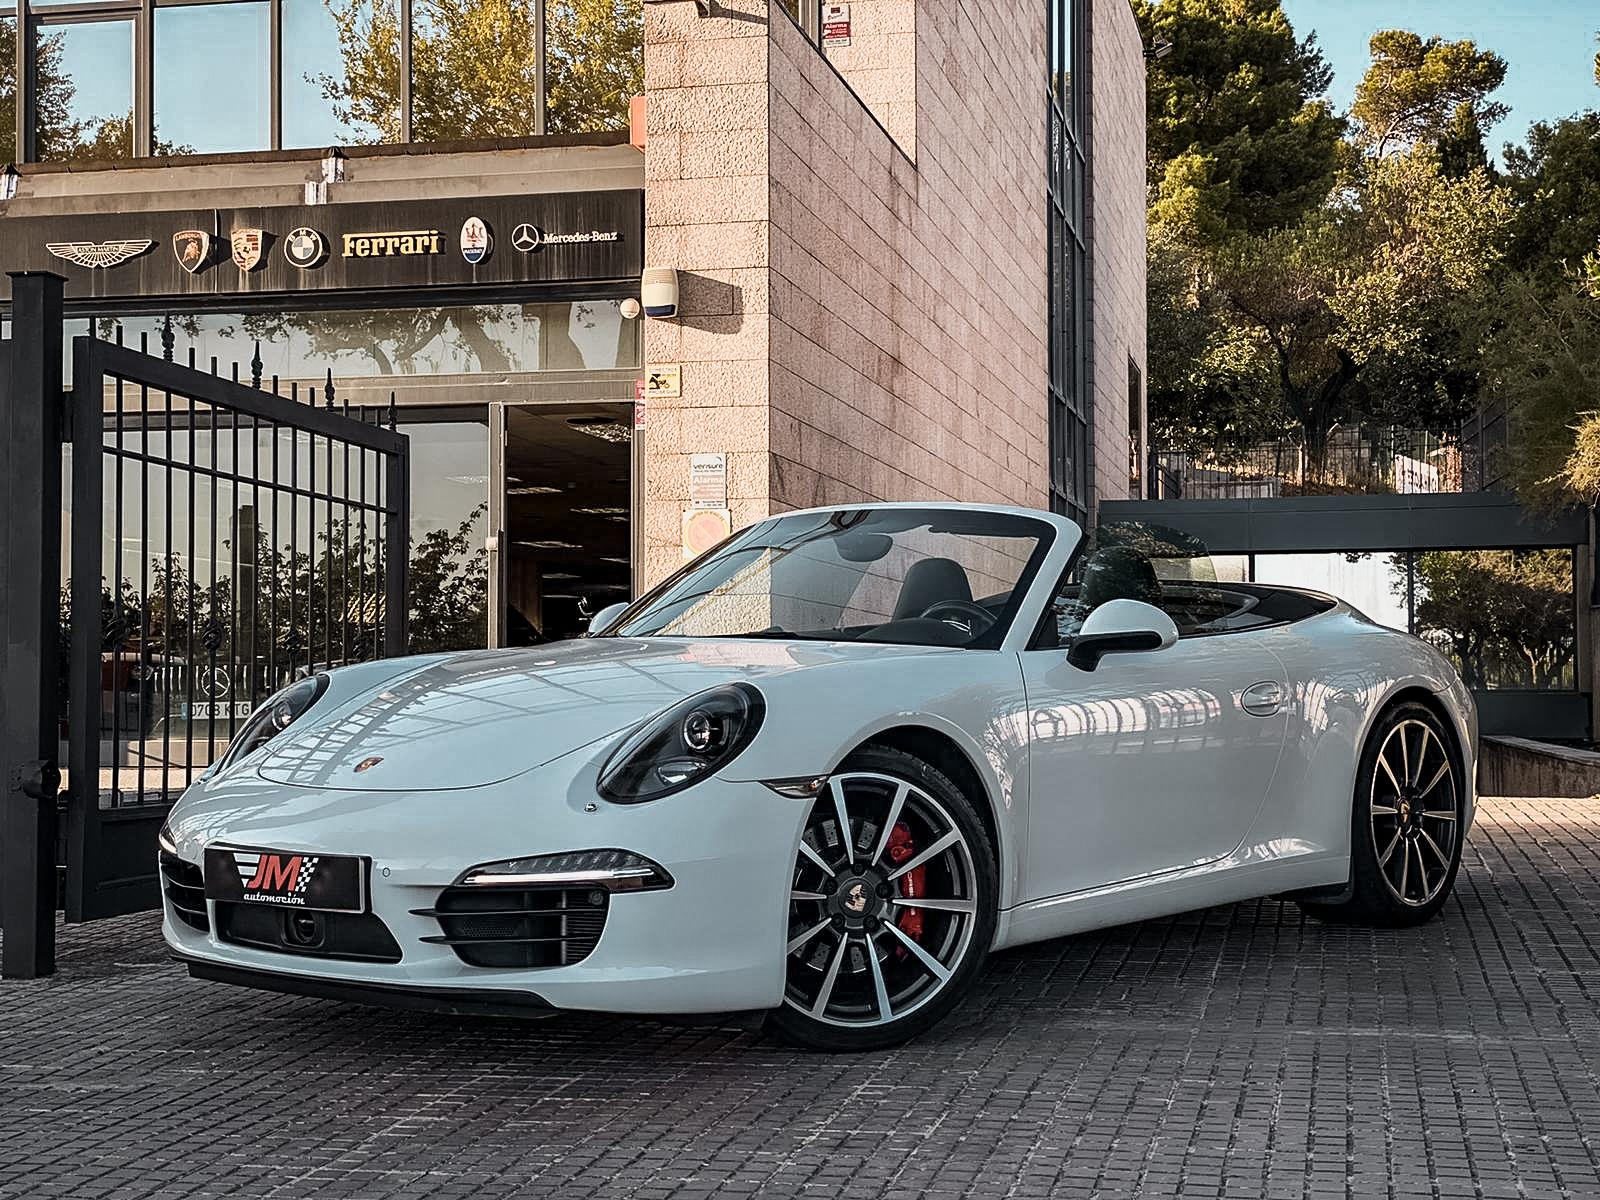 PORSCHE 911 991 CARRERA S CABRIO --IVA DEDUCIBLE--